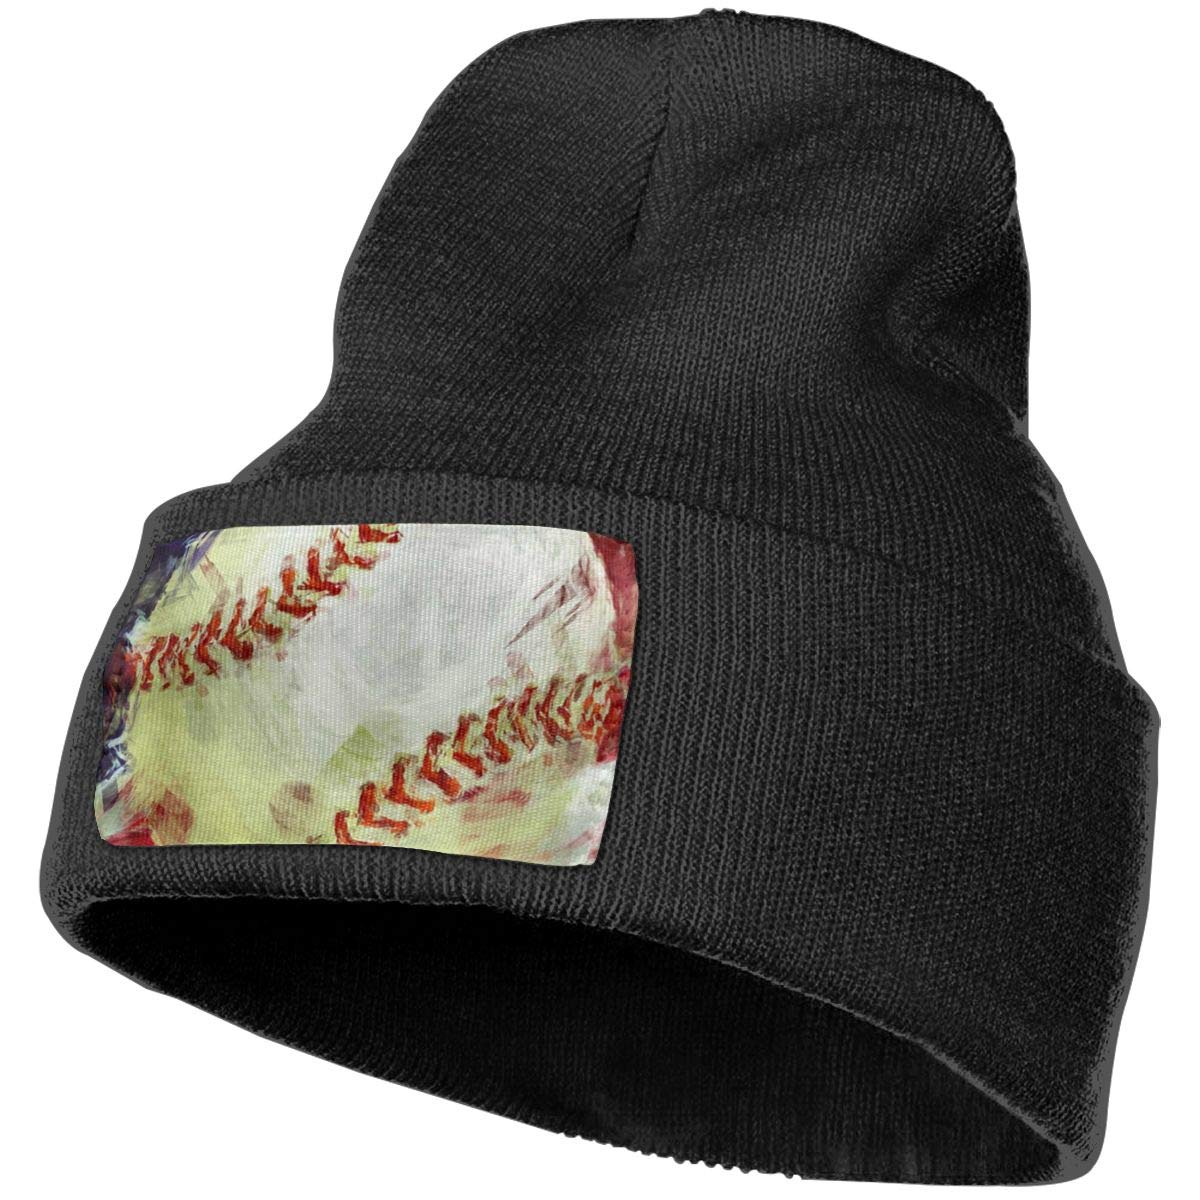 American-Baseball-Abstract Men /& Women Solid Color Knit Beanie Hat Stretchy /& Soft Winter Ski Knit Caps